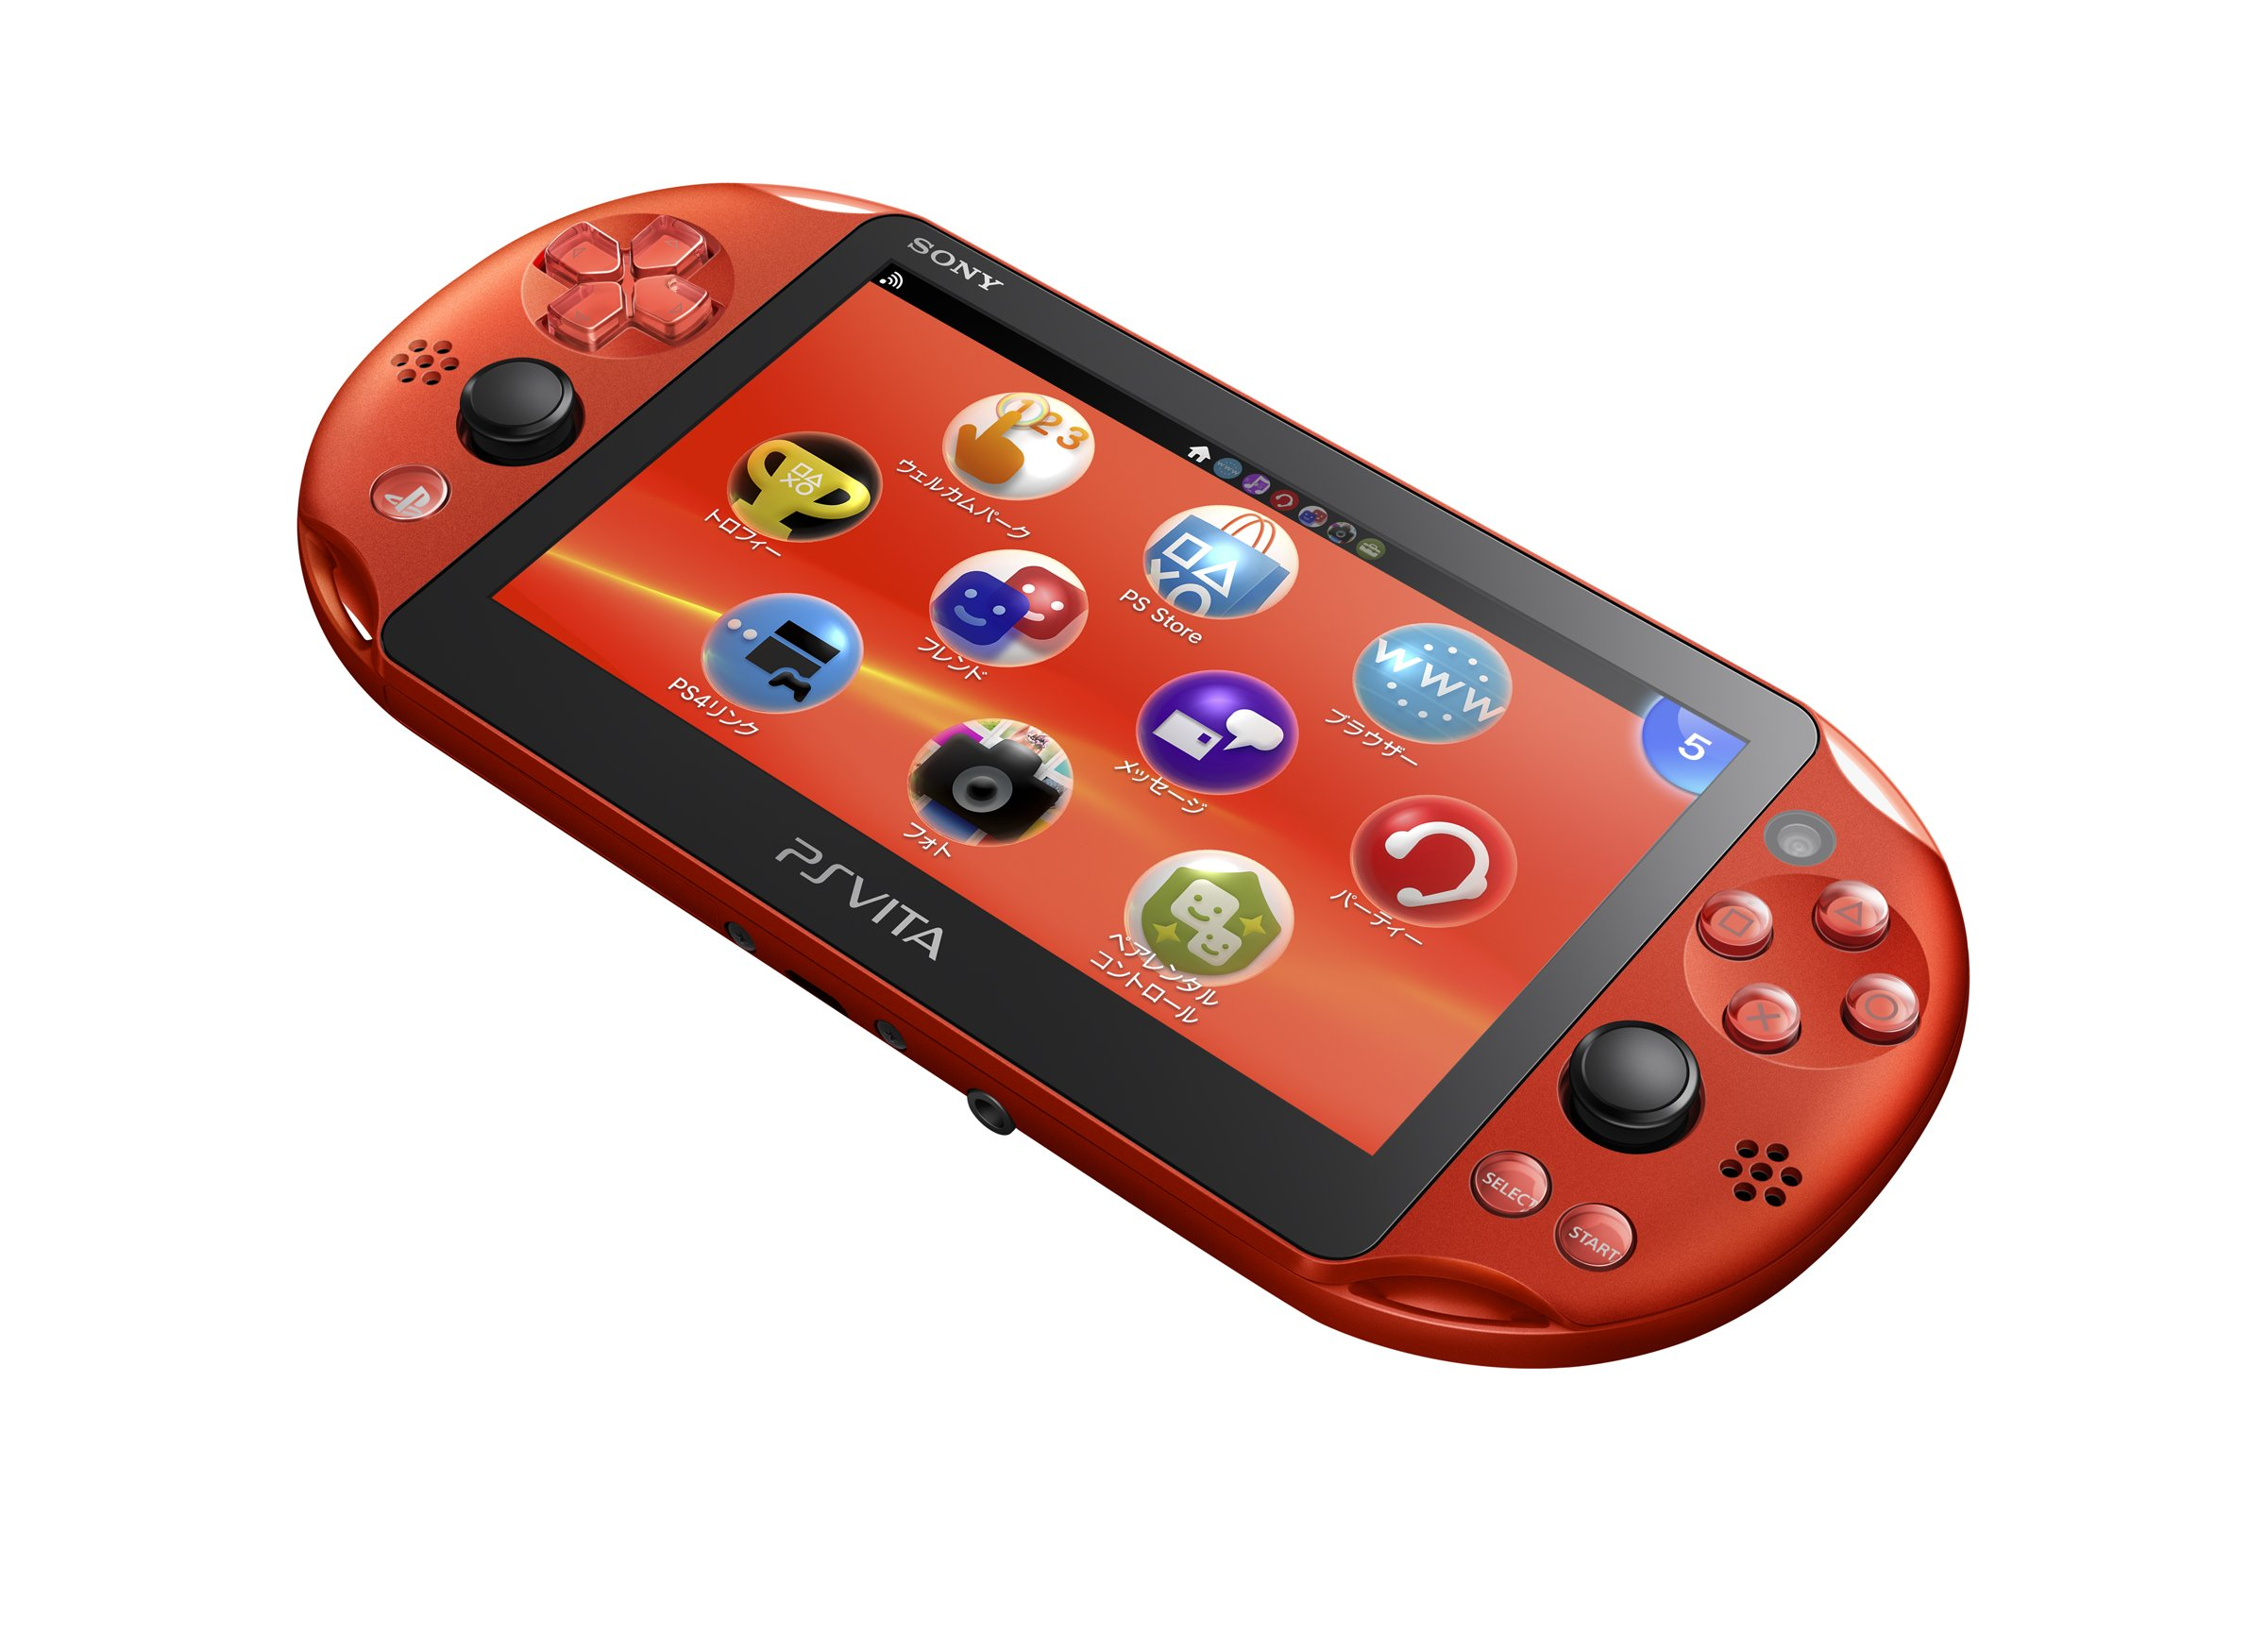 PlayStation Vita Wi-Fi Metallic Red PCH-2000ZA26 (Japan Import) by Sony (Image #6)